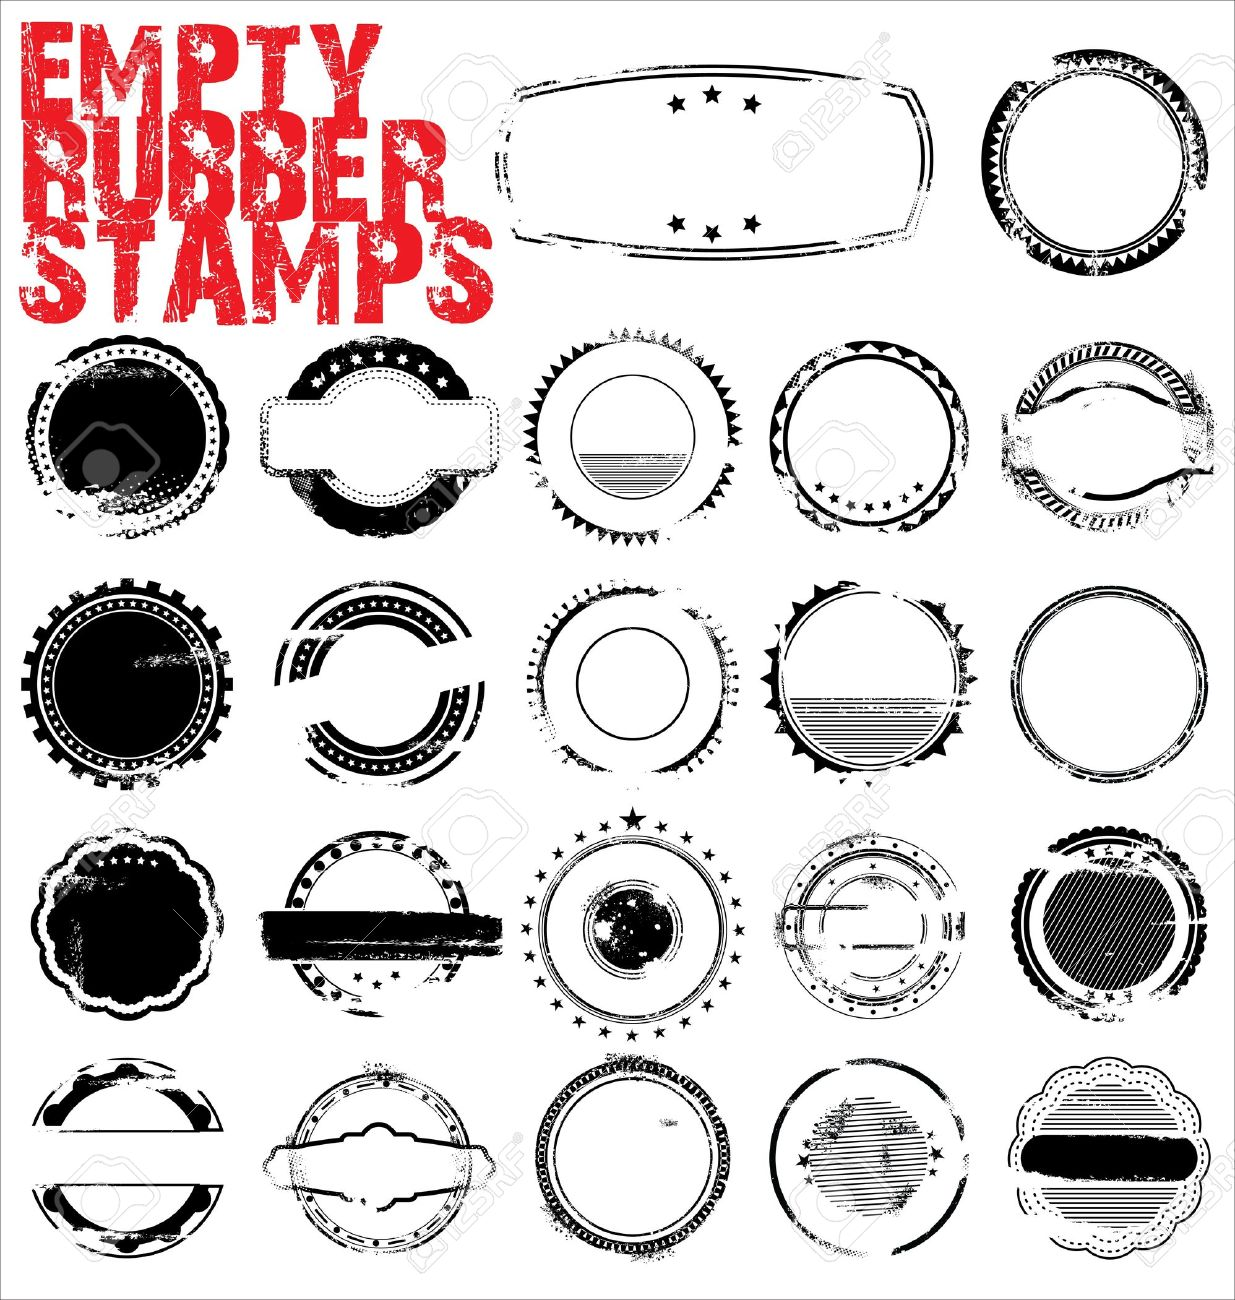 Empty Grunge Rubber Stamps - vector illustration Stock Vector - 12353303